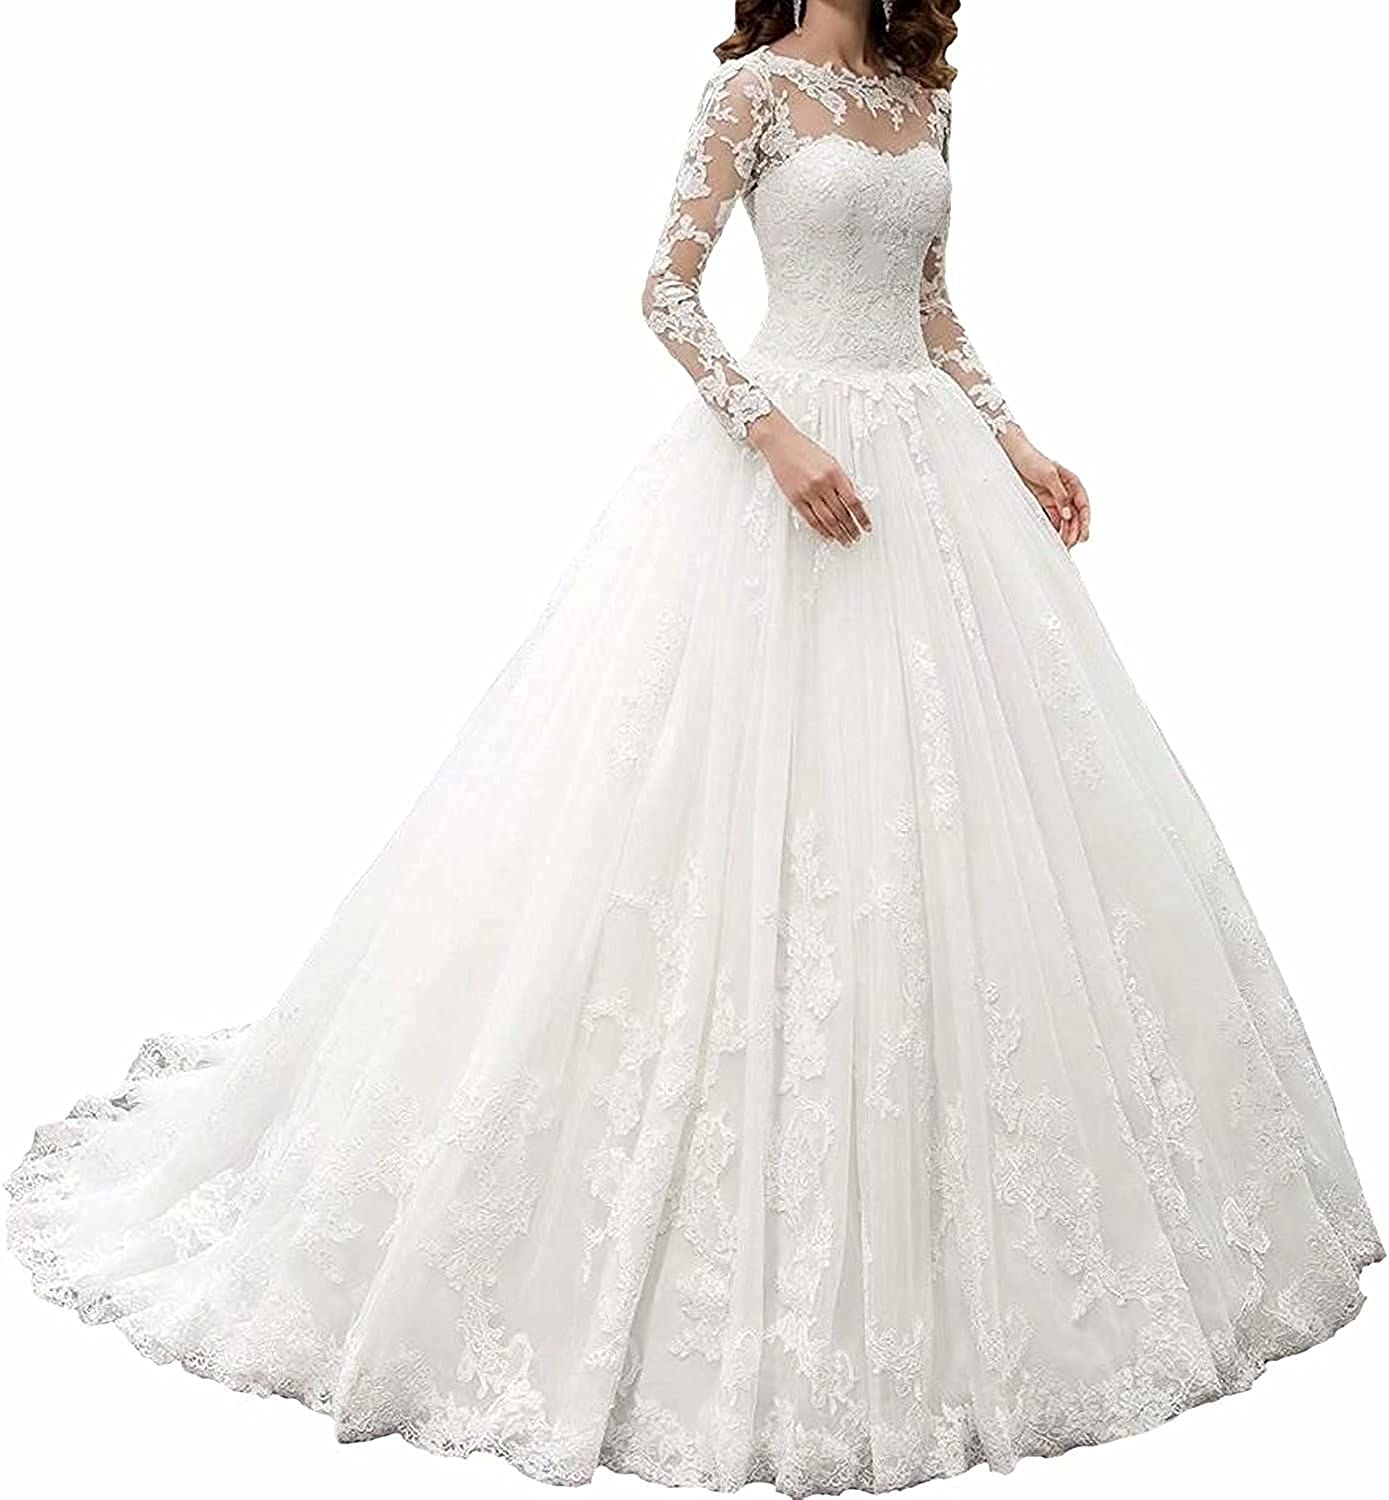 Amazon Com Owman New Women S Long Sleeves Scoop Lace Ball Gown Wedding Dress Bridal Gowns Clothing Shoes Jewelry